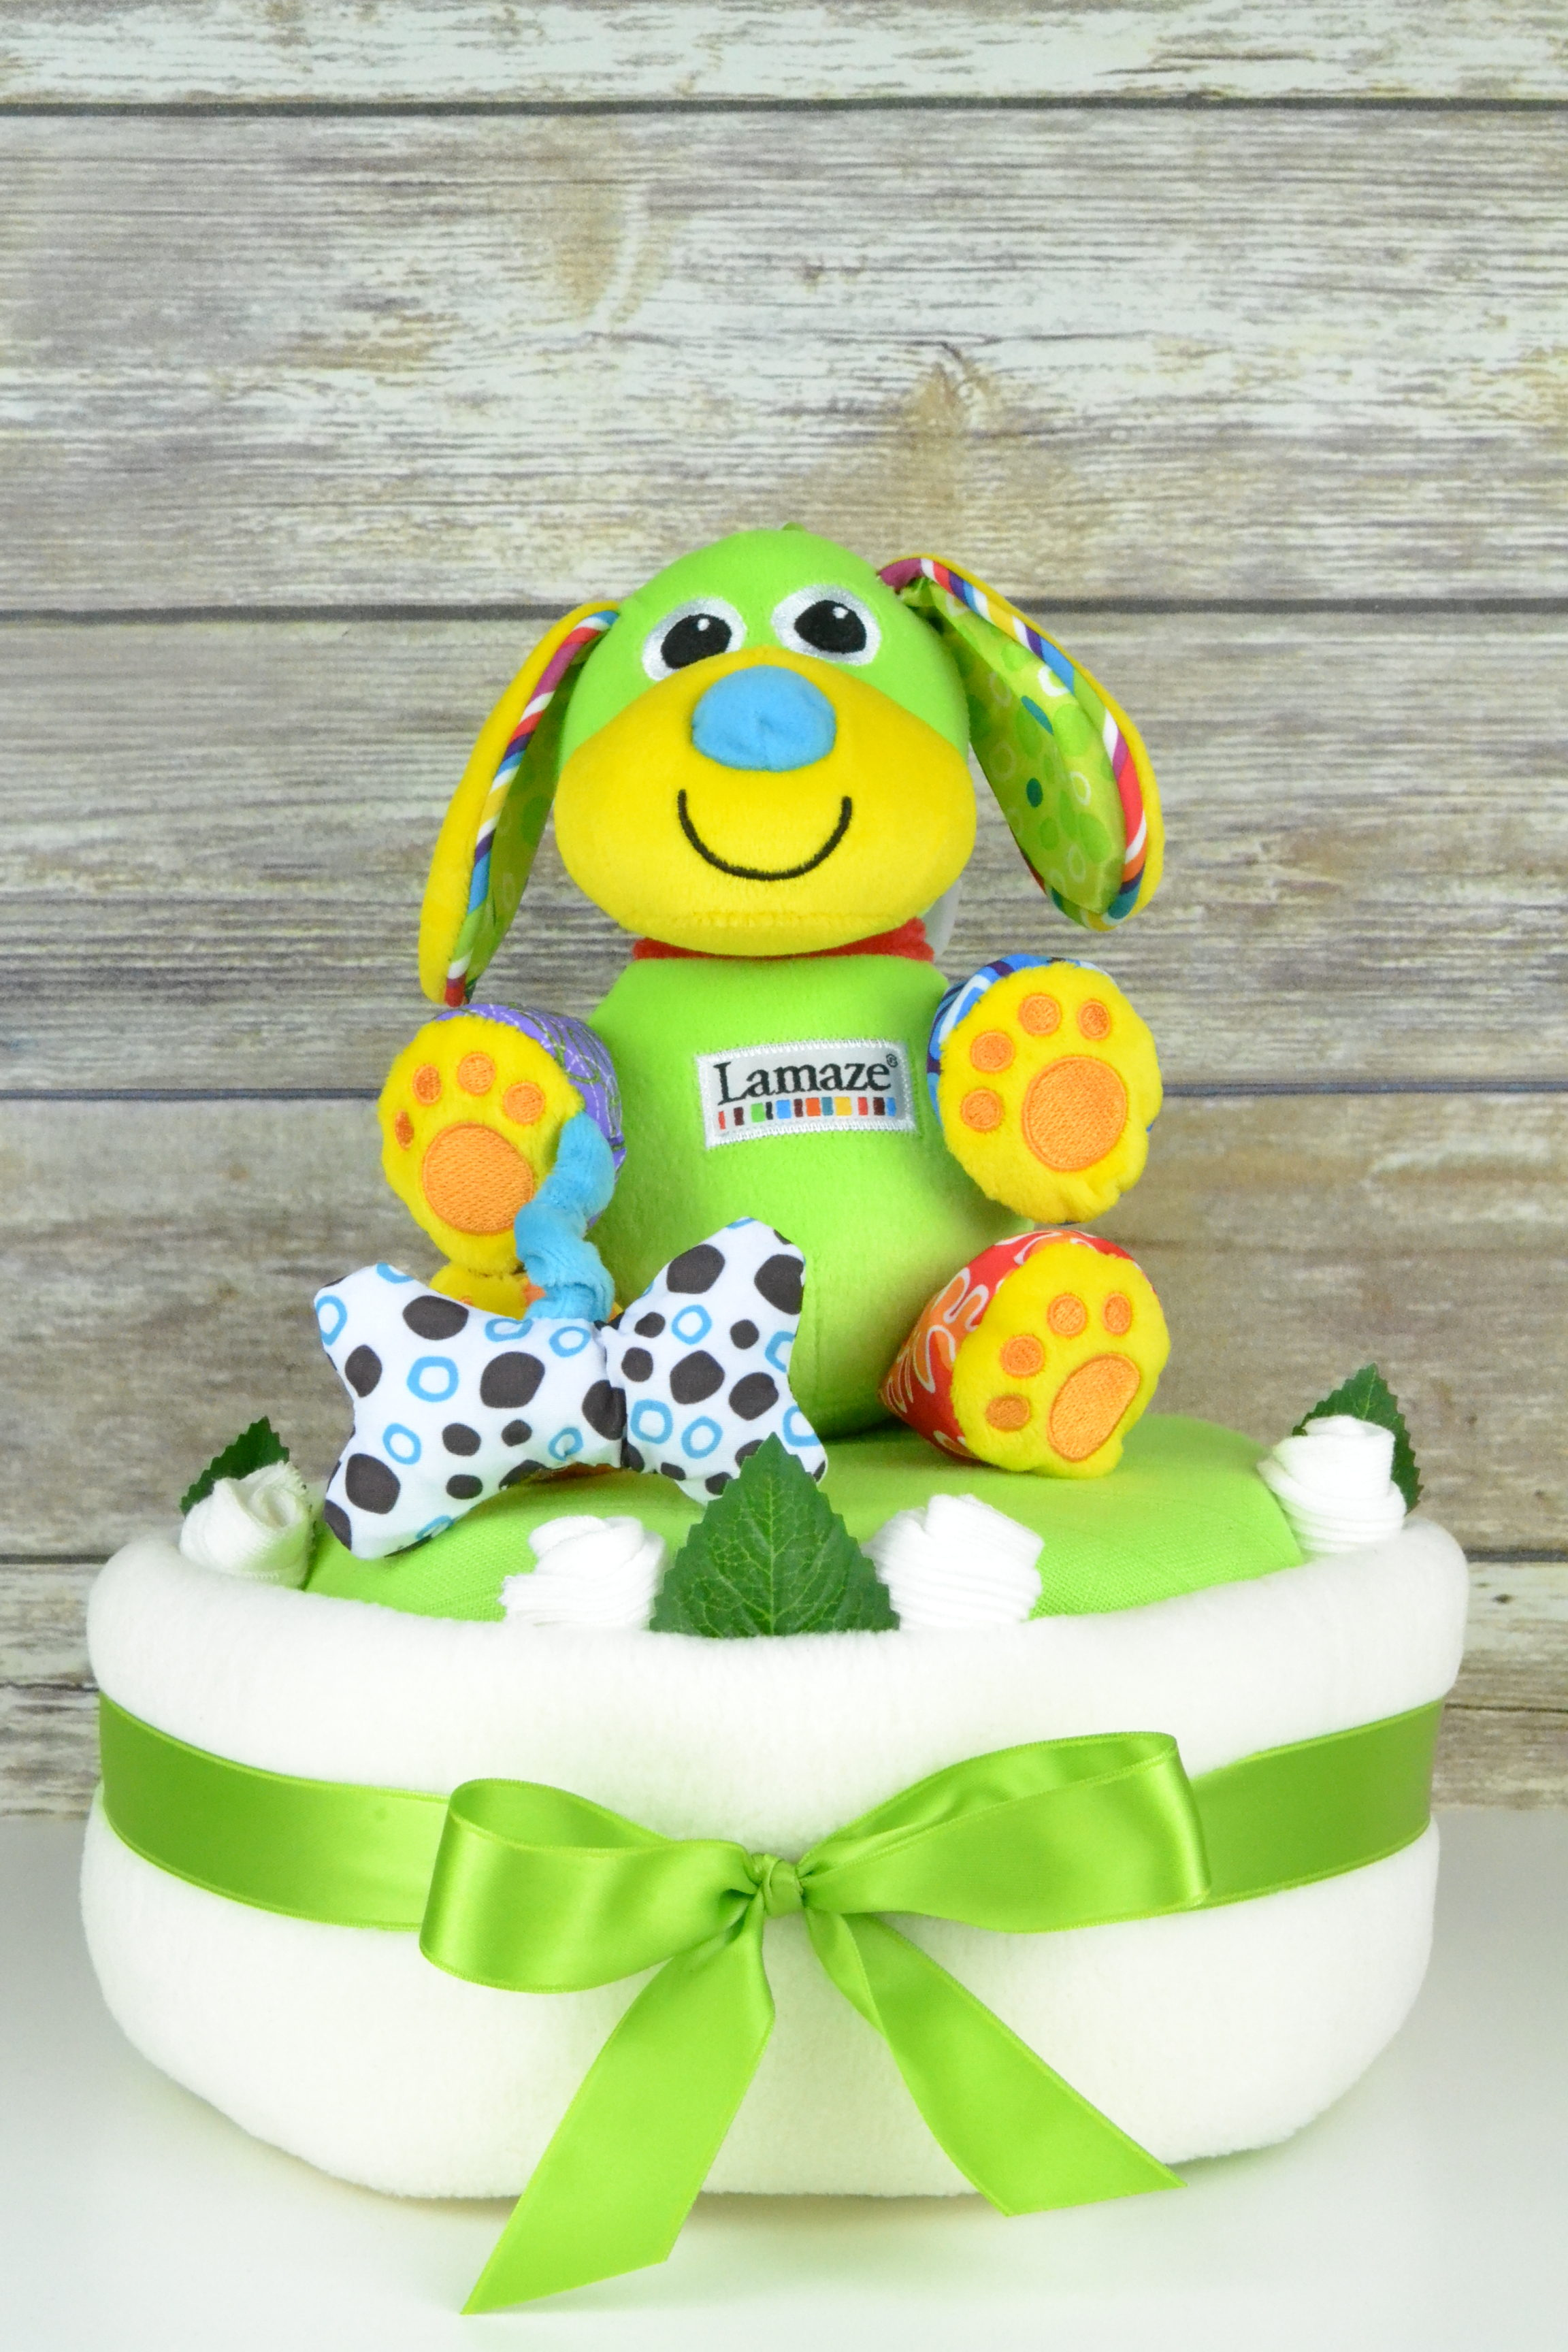 Cream Lamaze Pupsqueak Nappy Cake